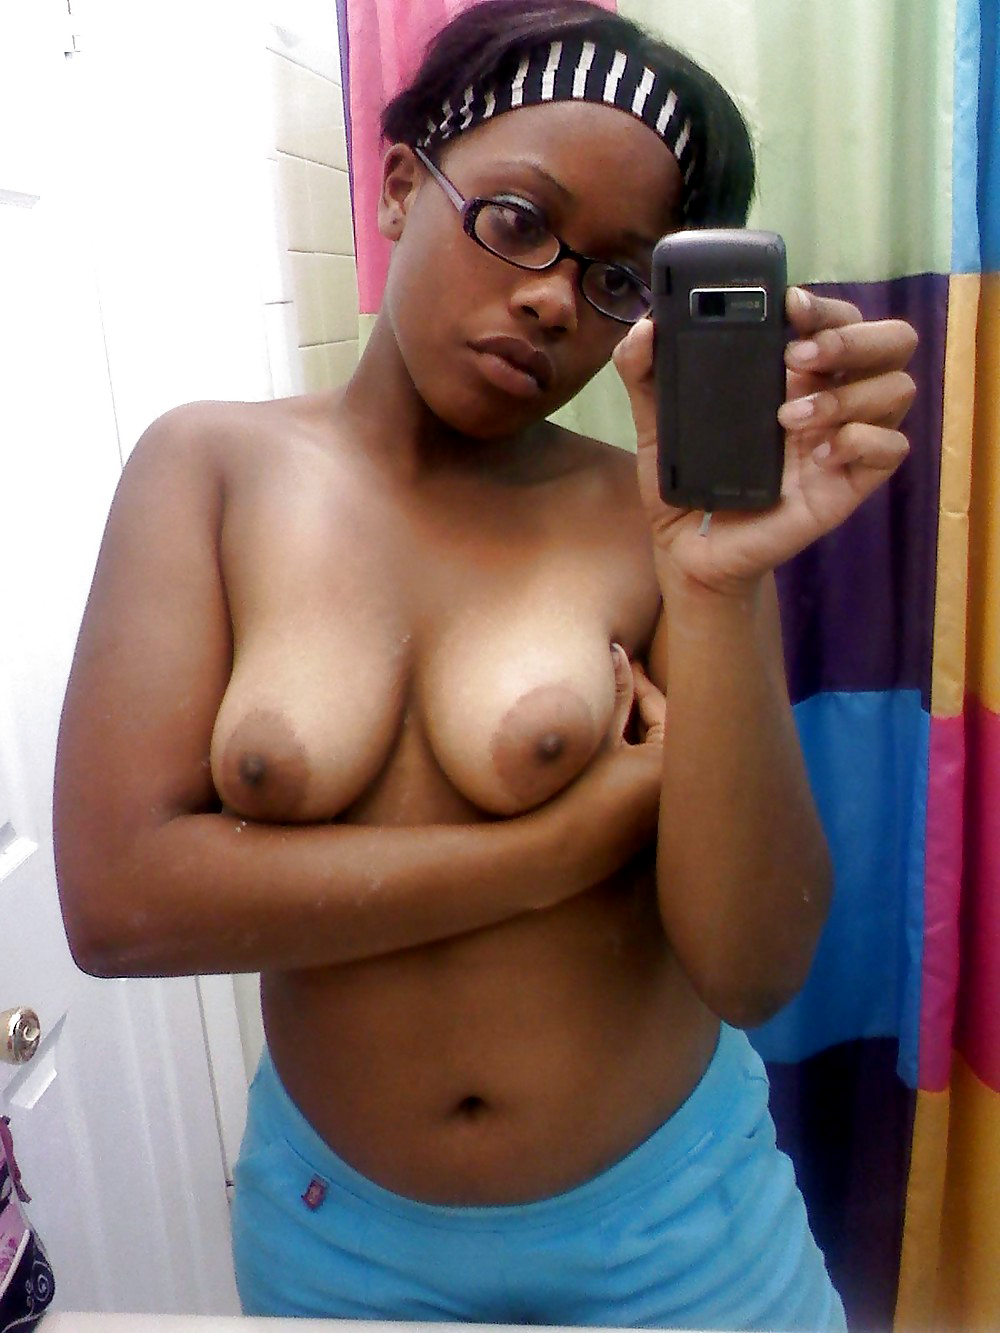 Most beautiful transgender woman naked